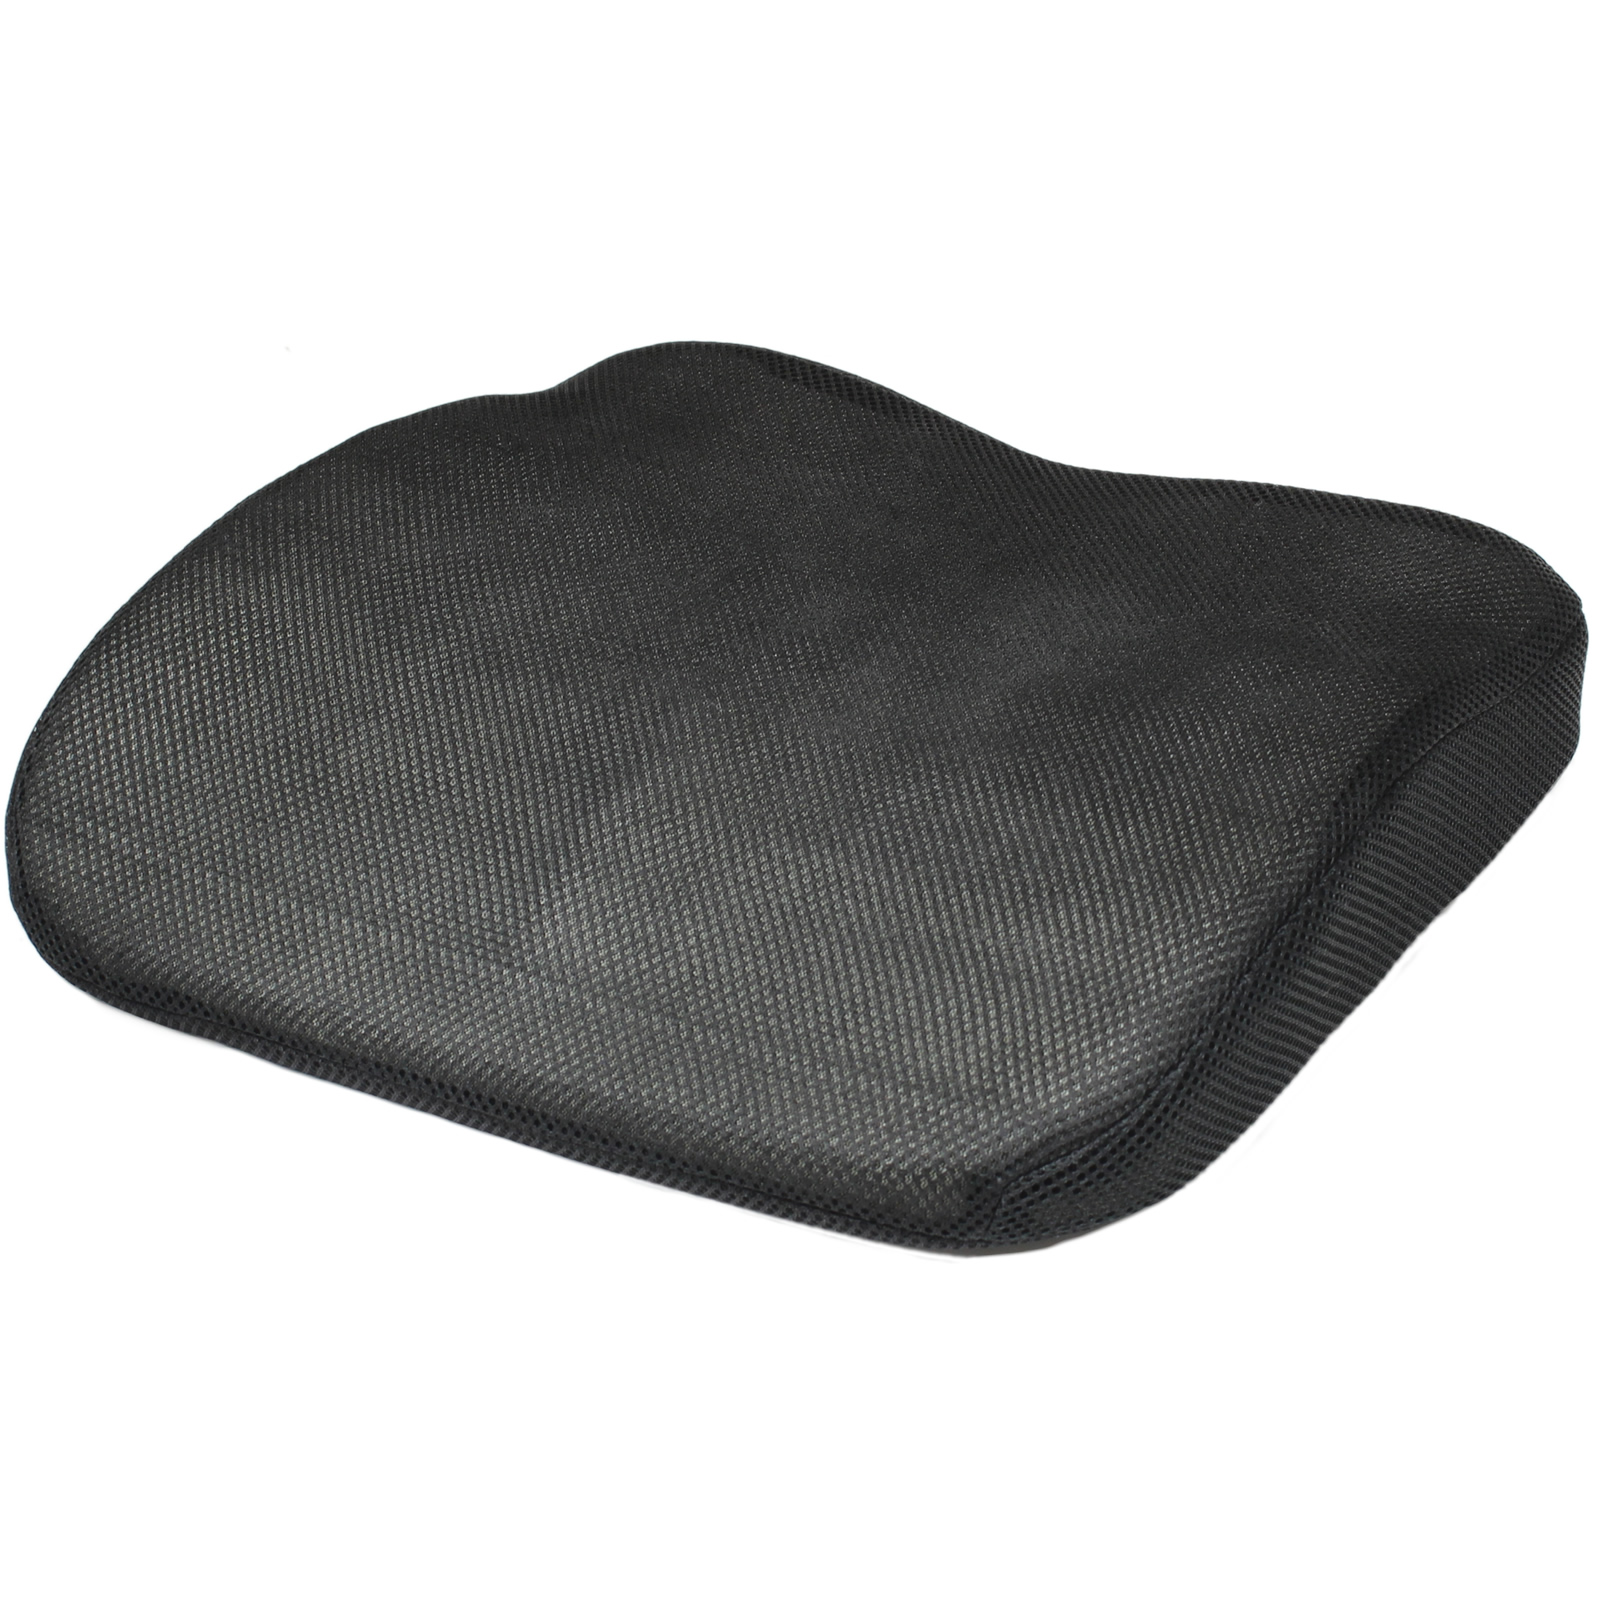 Foam Chair Cushions 3d Mesh Memory Foam Seat Cushion Lower Back Lumbar Support